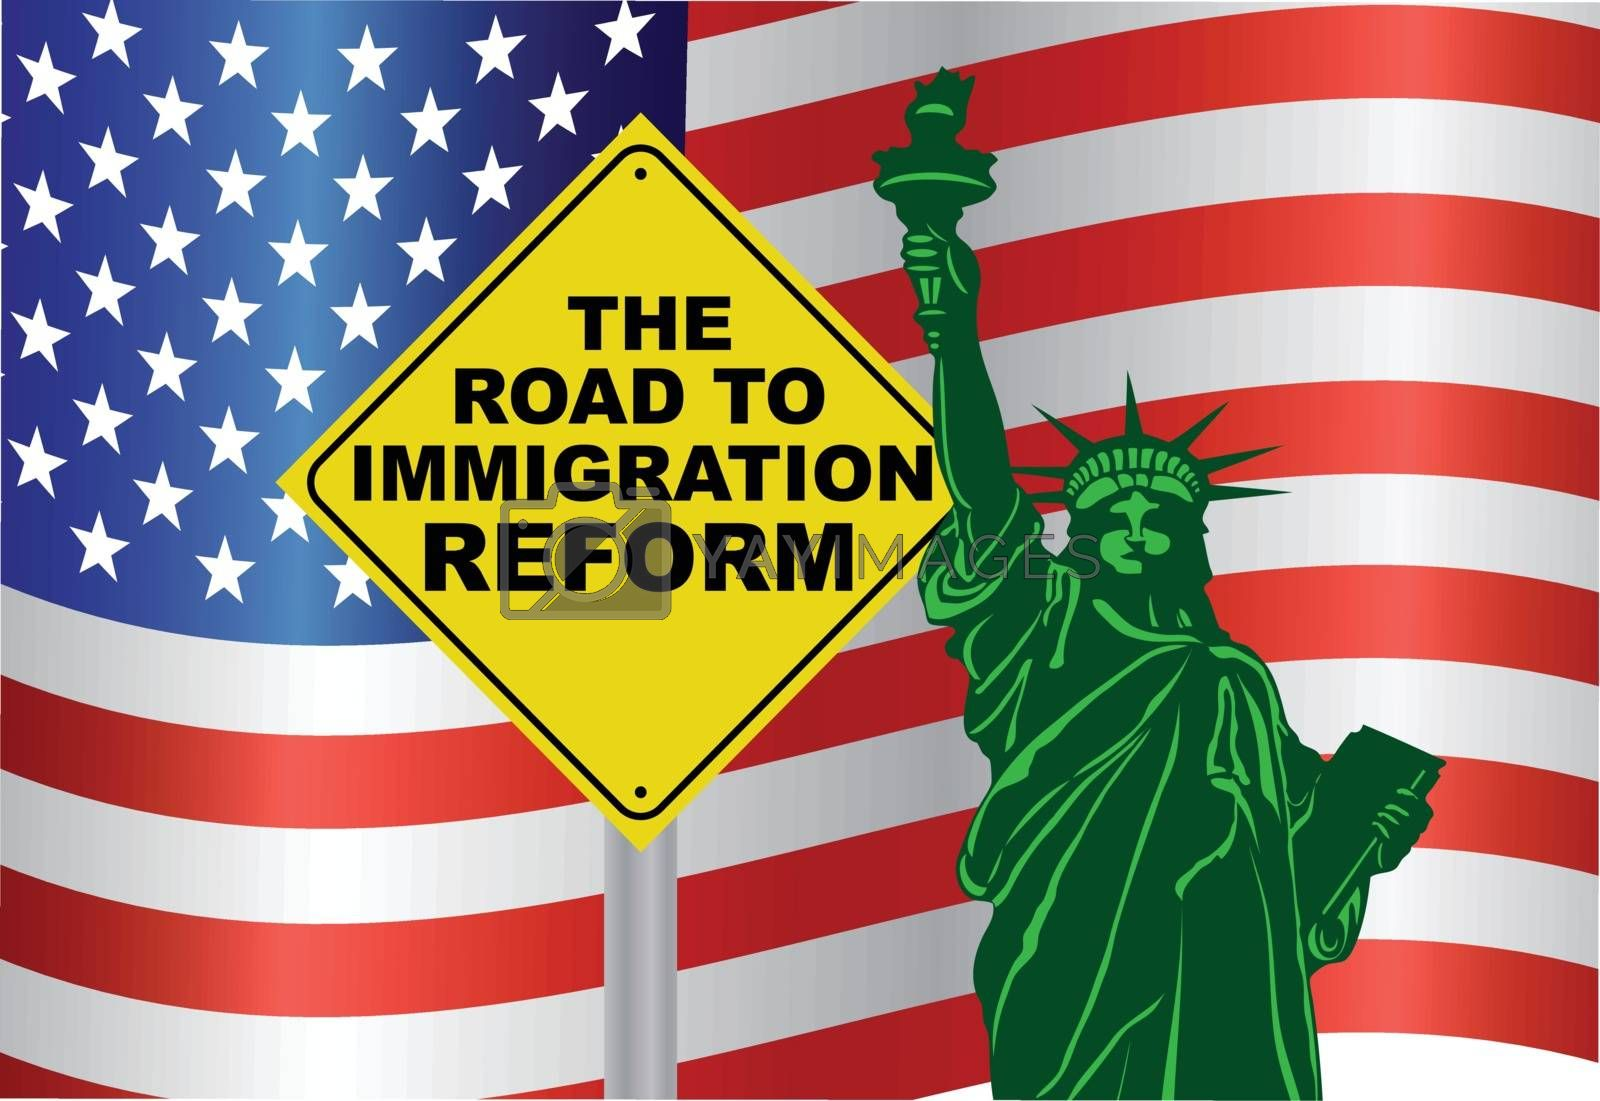 Government Road to Immigration Reform Sign with Statue of Liberty with USA American Flag Illustration